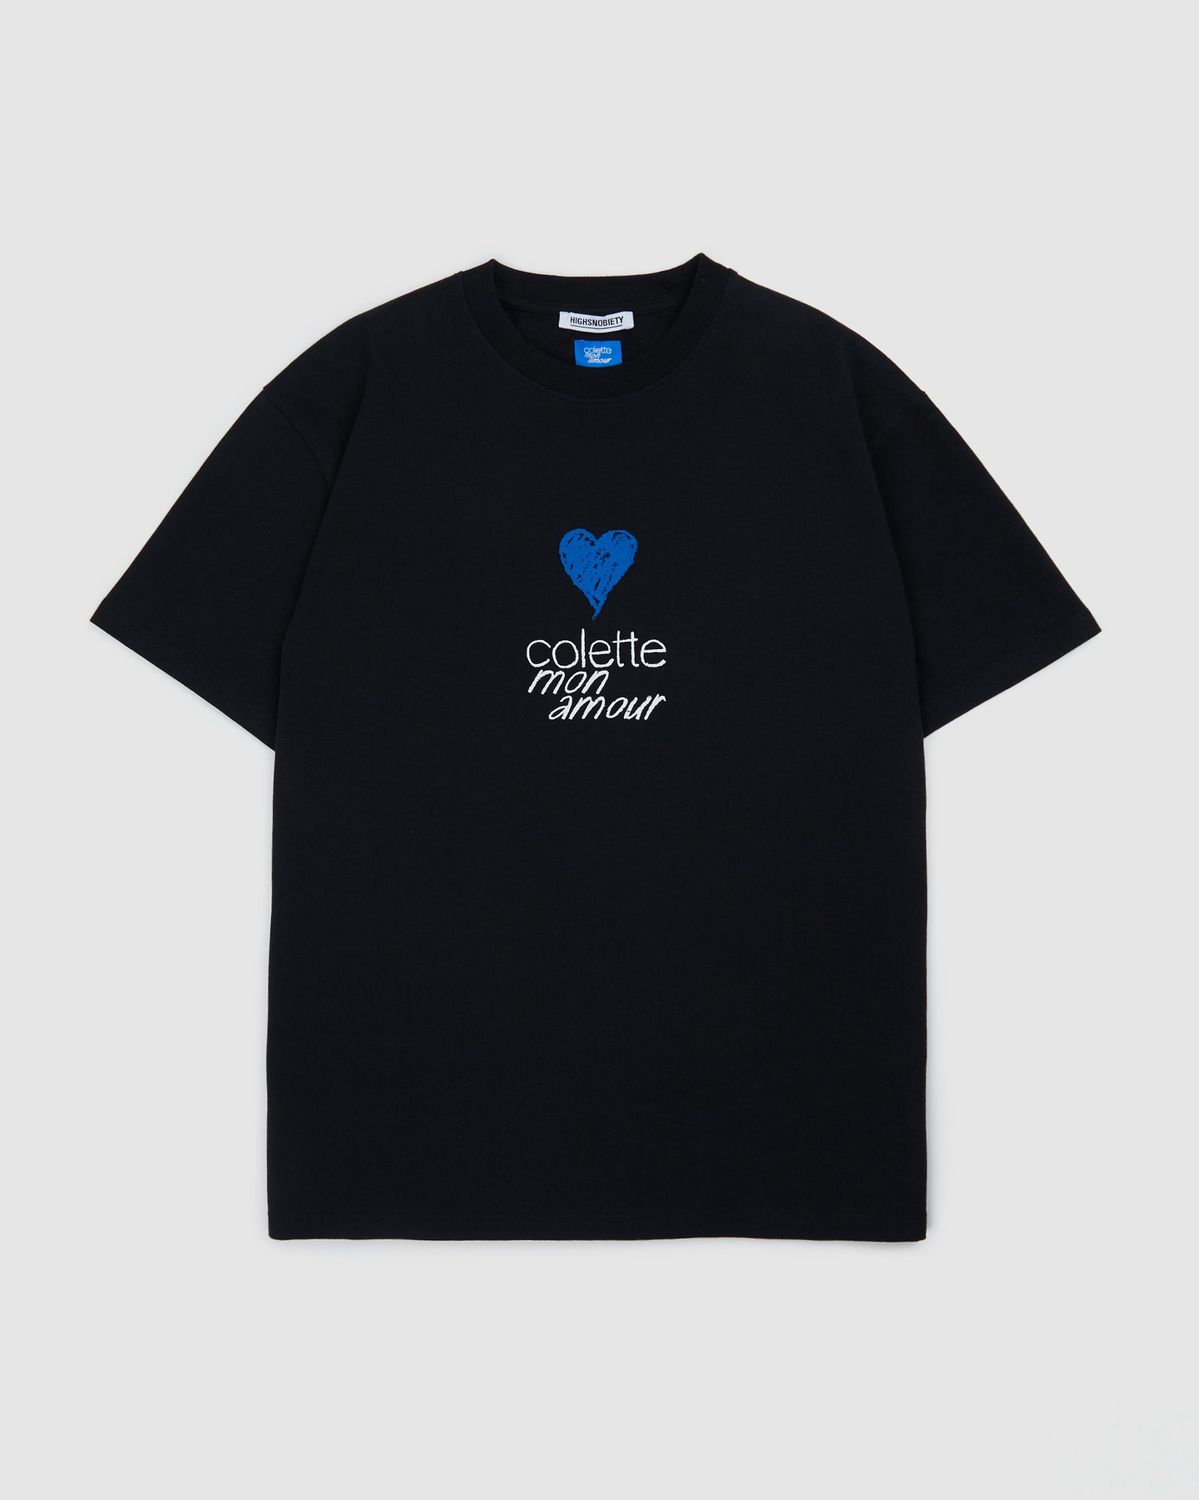 Colette Mon Amour - Heart T-Shirt Black - Image 1